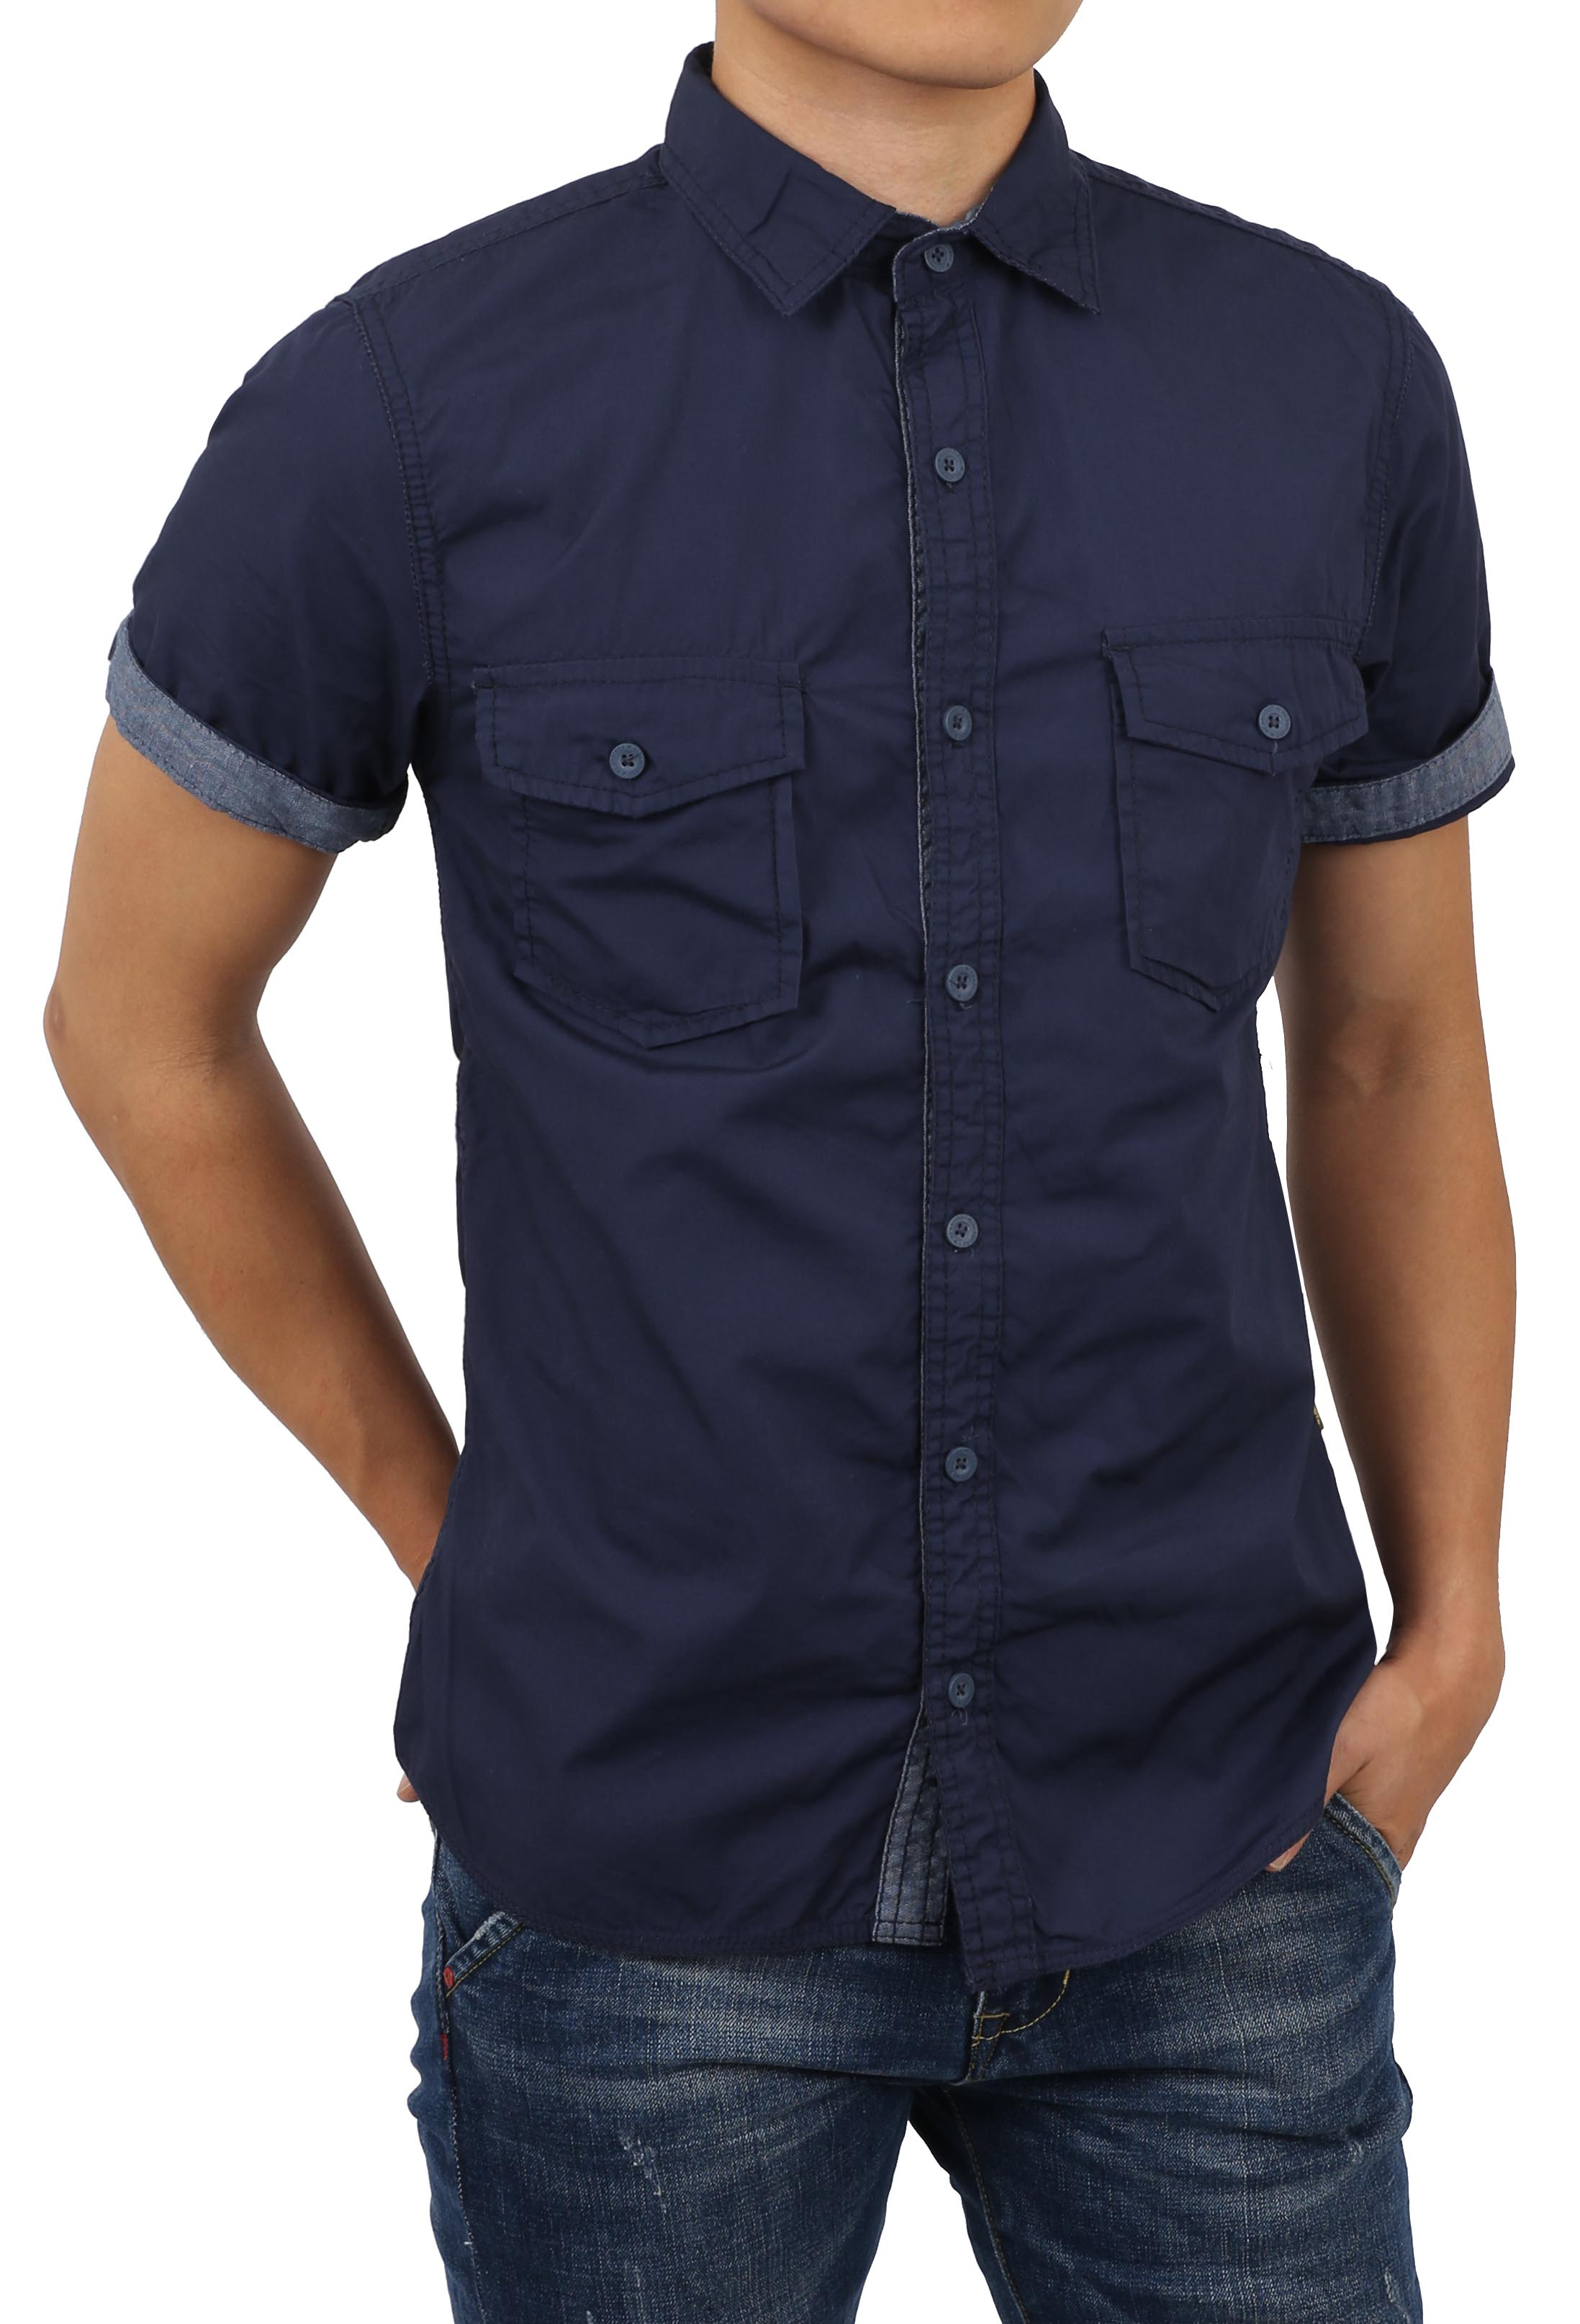 Mens Roll Up Sleeve Collar Button Down Chambray Striped Short Long Sleeve Casual Shirt